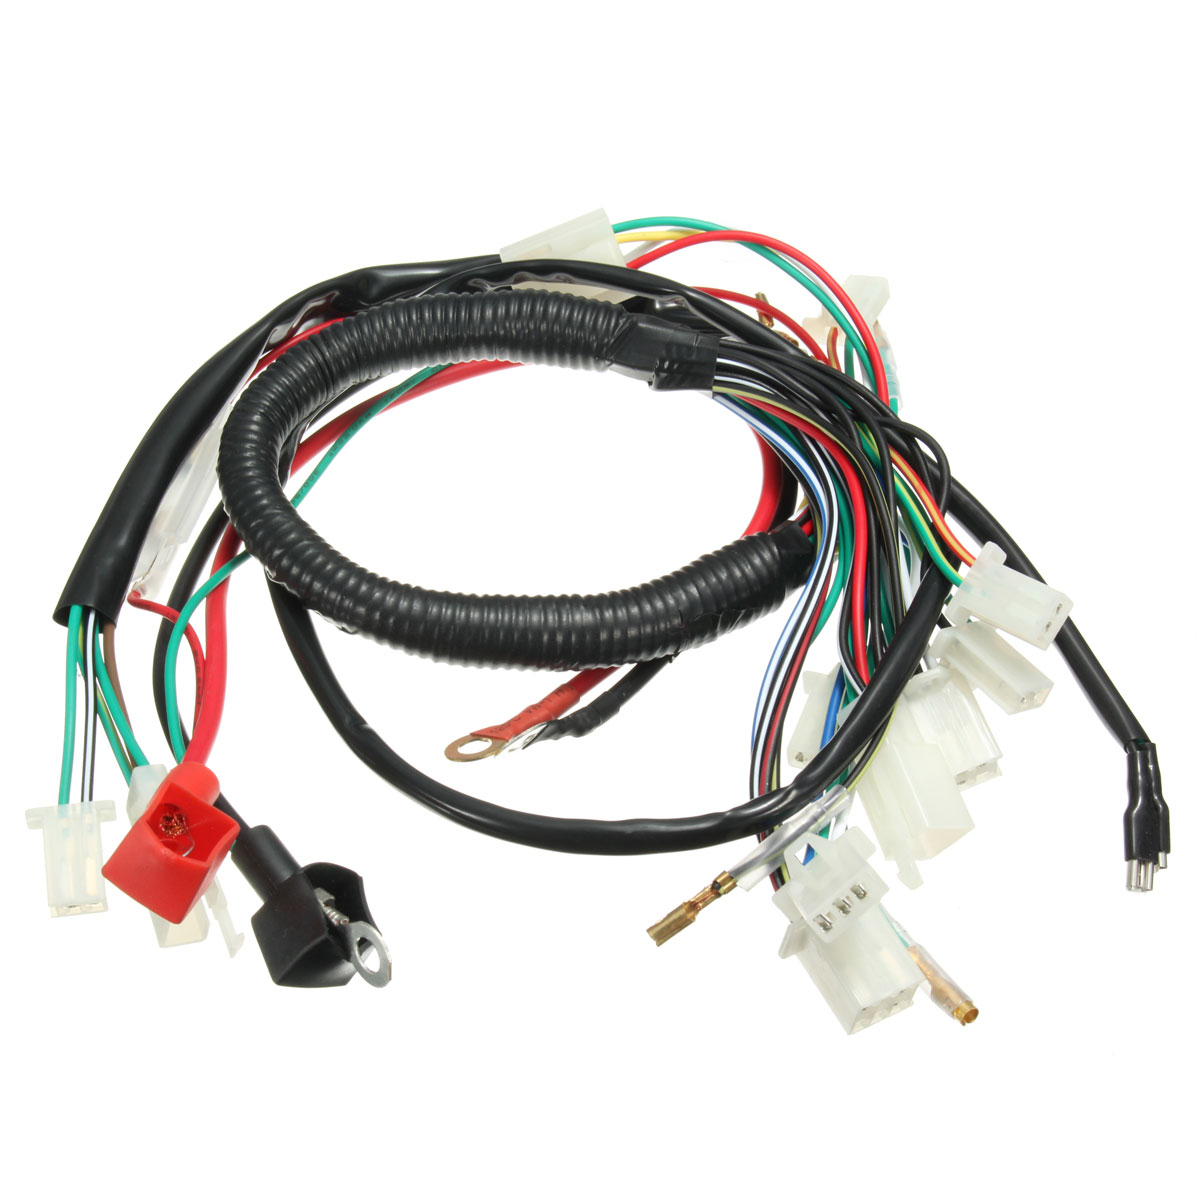 Diagram  Chinese Gy6 150cc Wire Harness Wiring Assembly Scooter Moped For 11 Pole 8 Pole